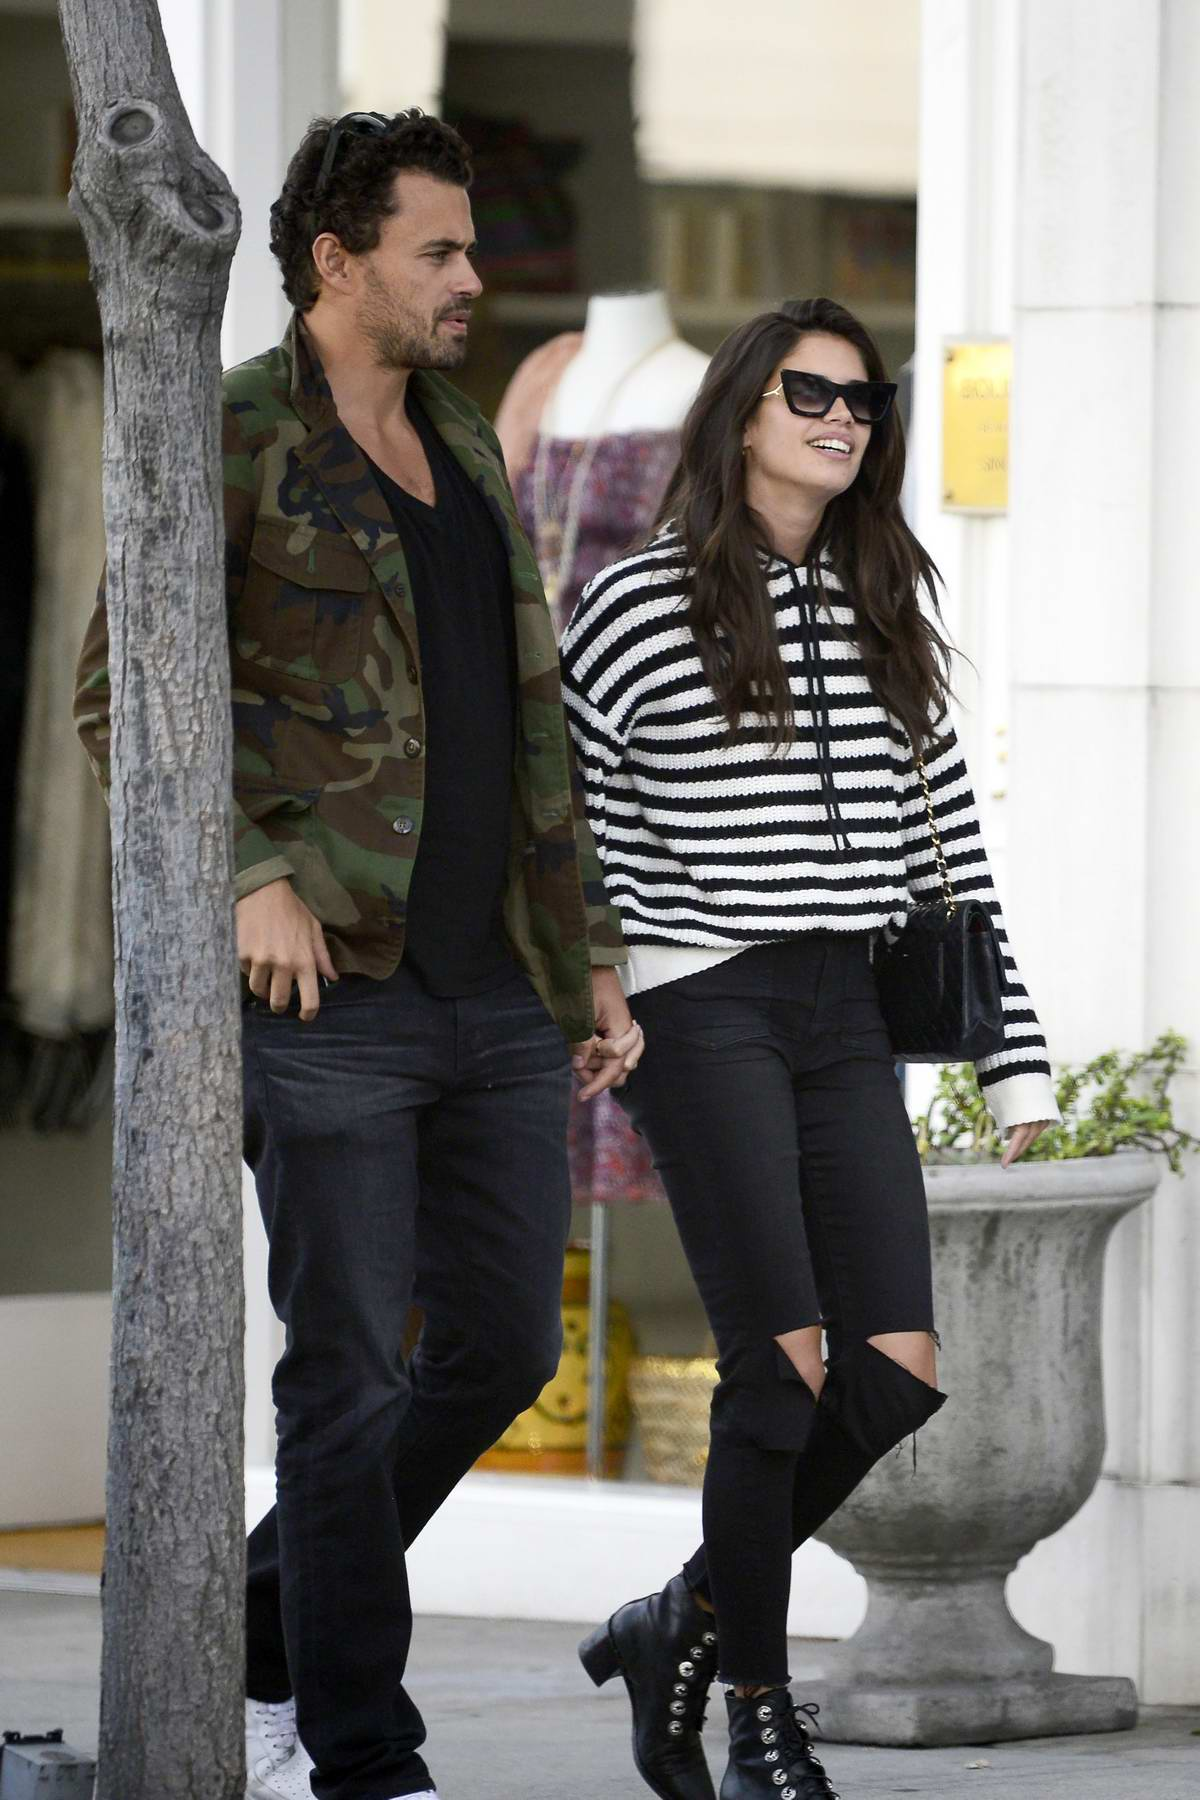 Sara Sampaio and boyfriend Oliver Ripley hold hands as they stroll around Rodeo Drive in Beverly Hills, Los Angeles